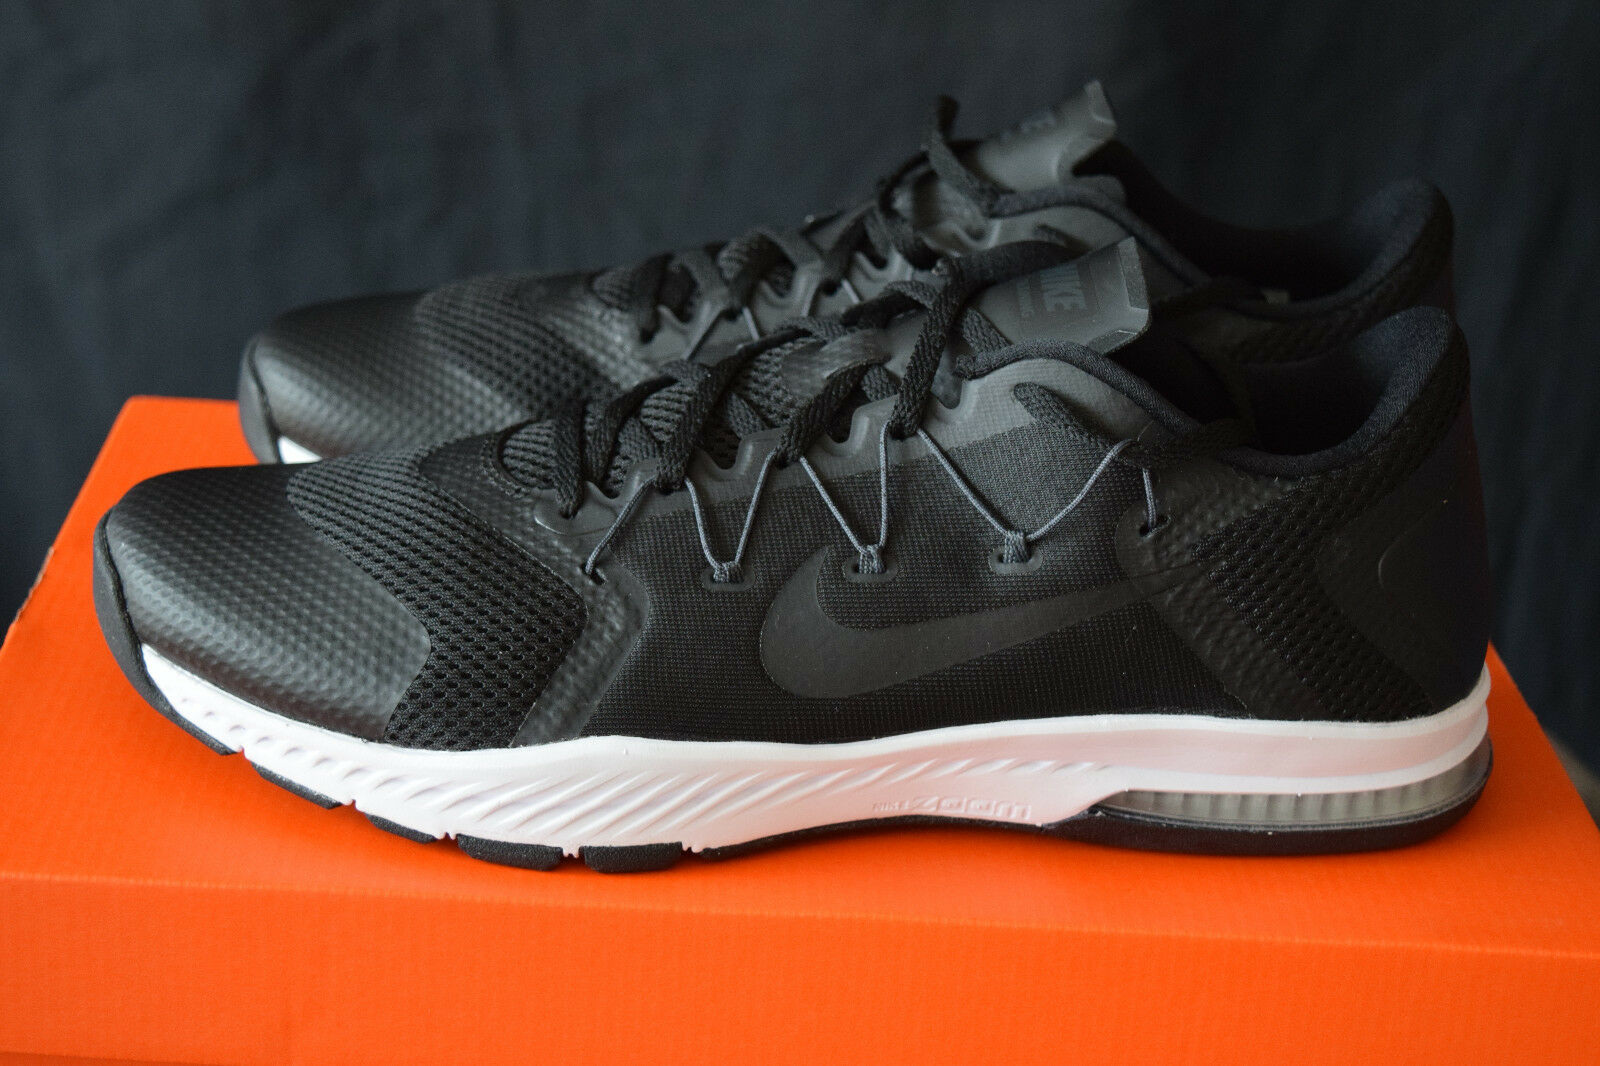 New In Box Nike Zoom Train Complete Mens Running Shoes Shoes Running Sz 11 Black, White b71f37